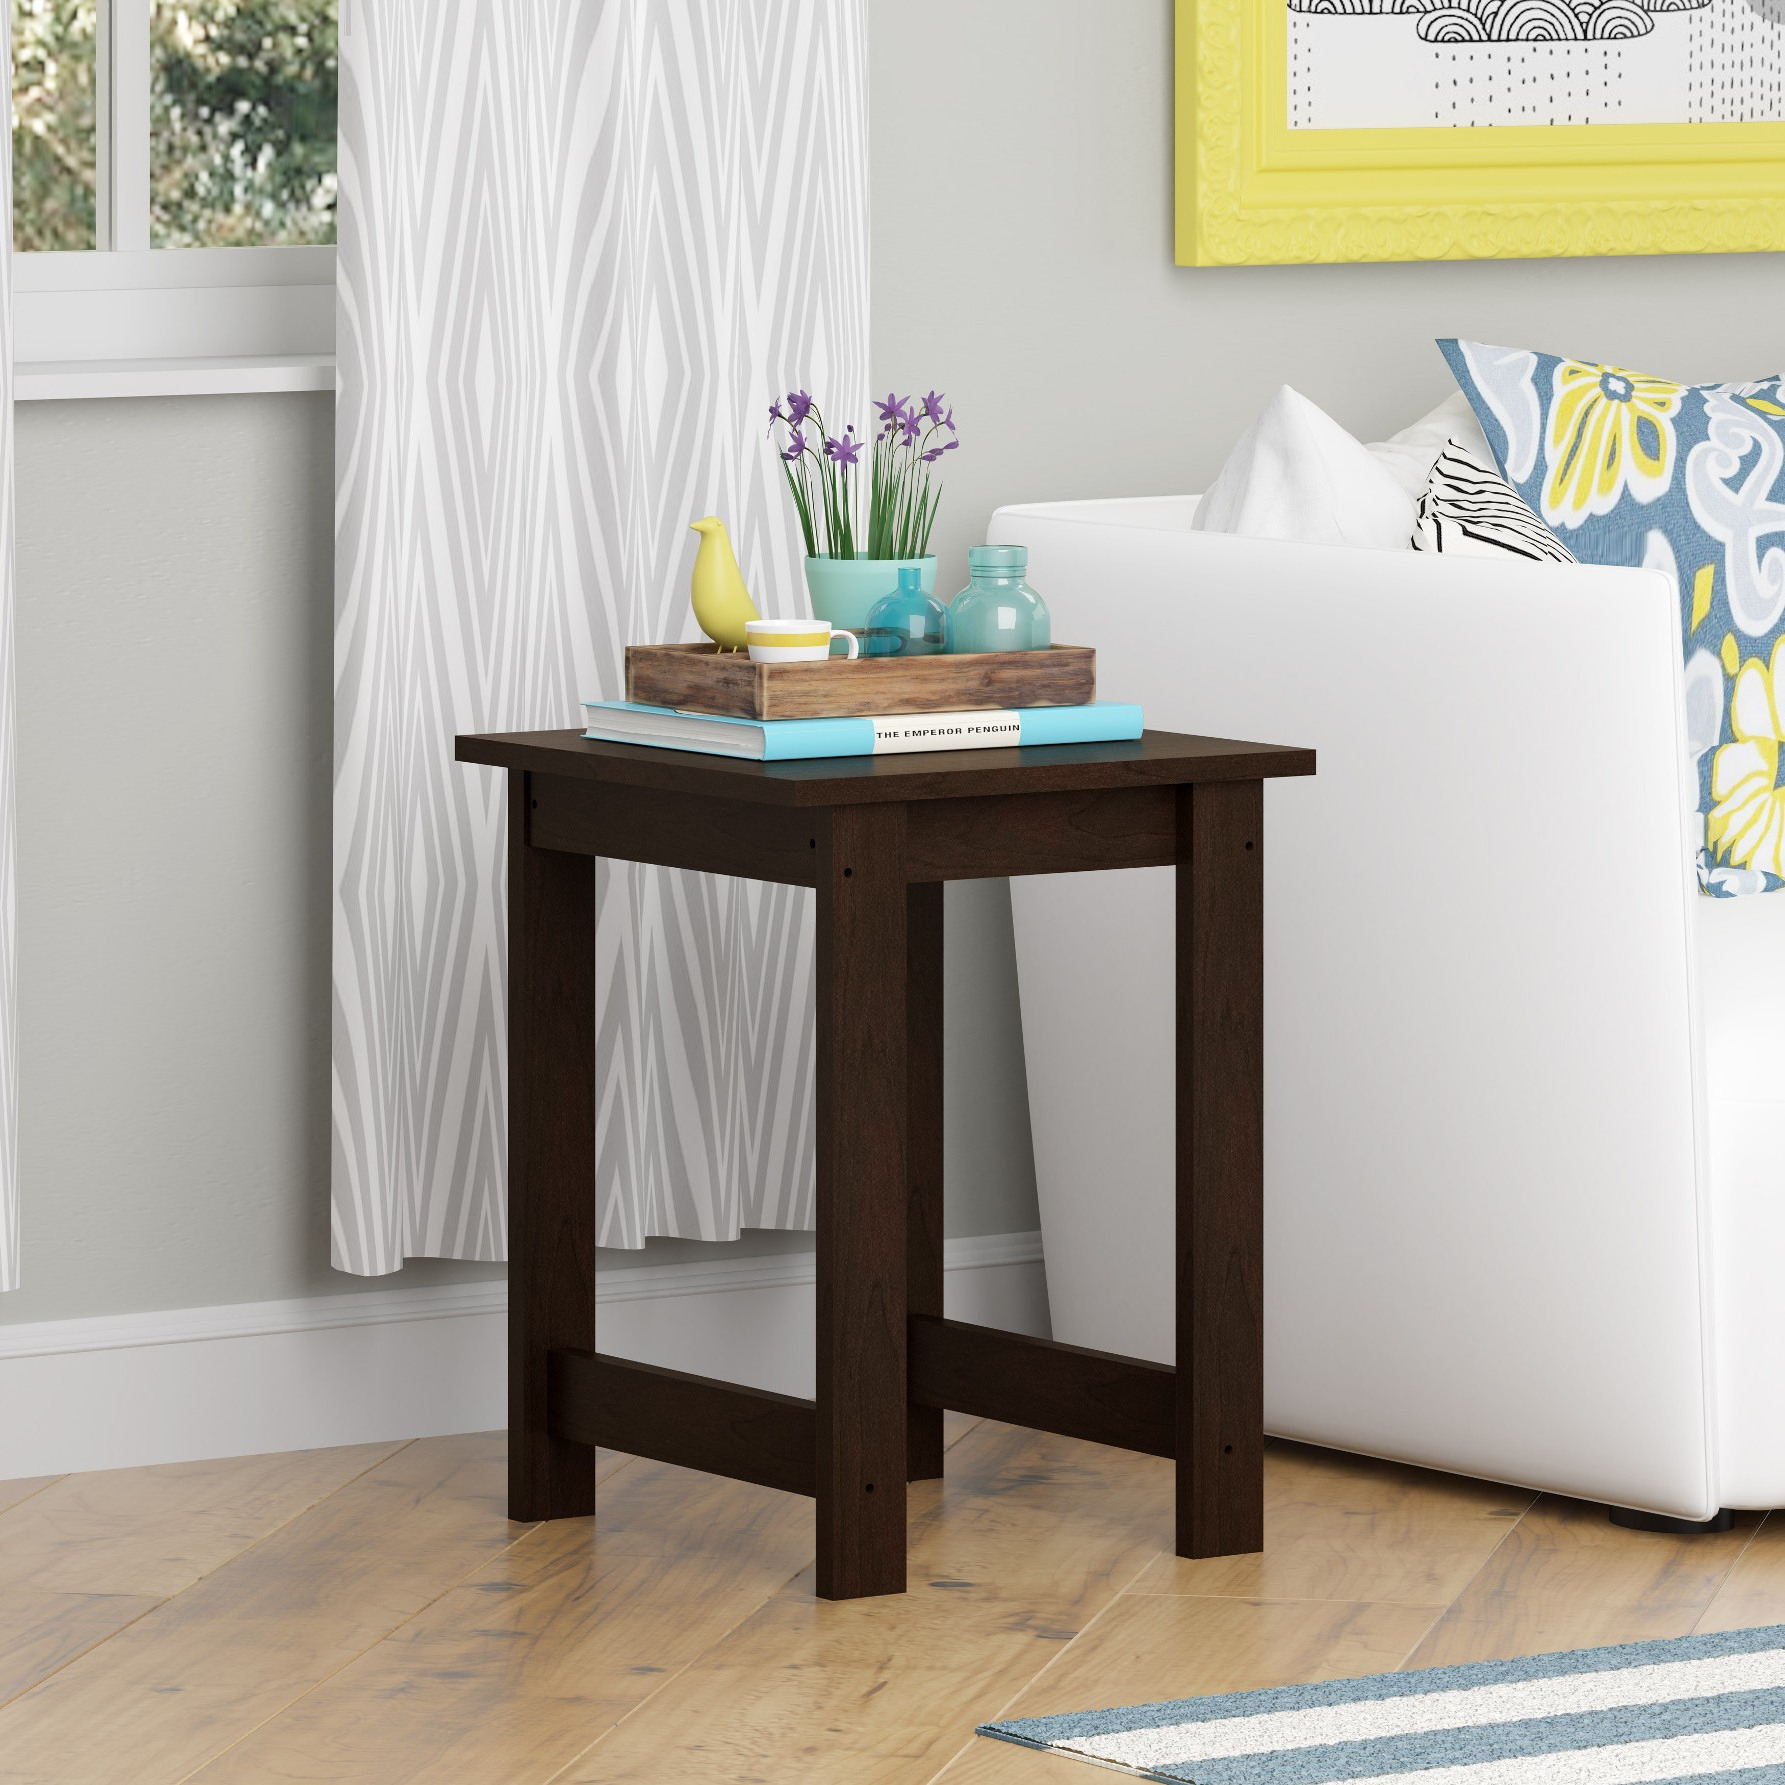 End tables for living room living room ideas on a budget for Sitting room table designs